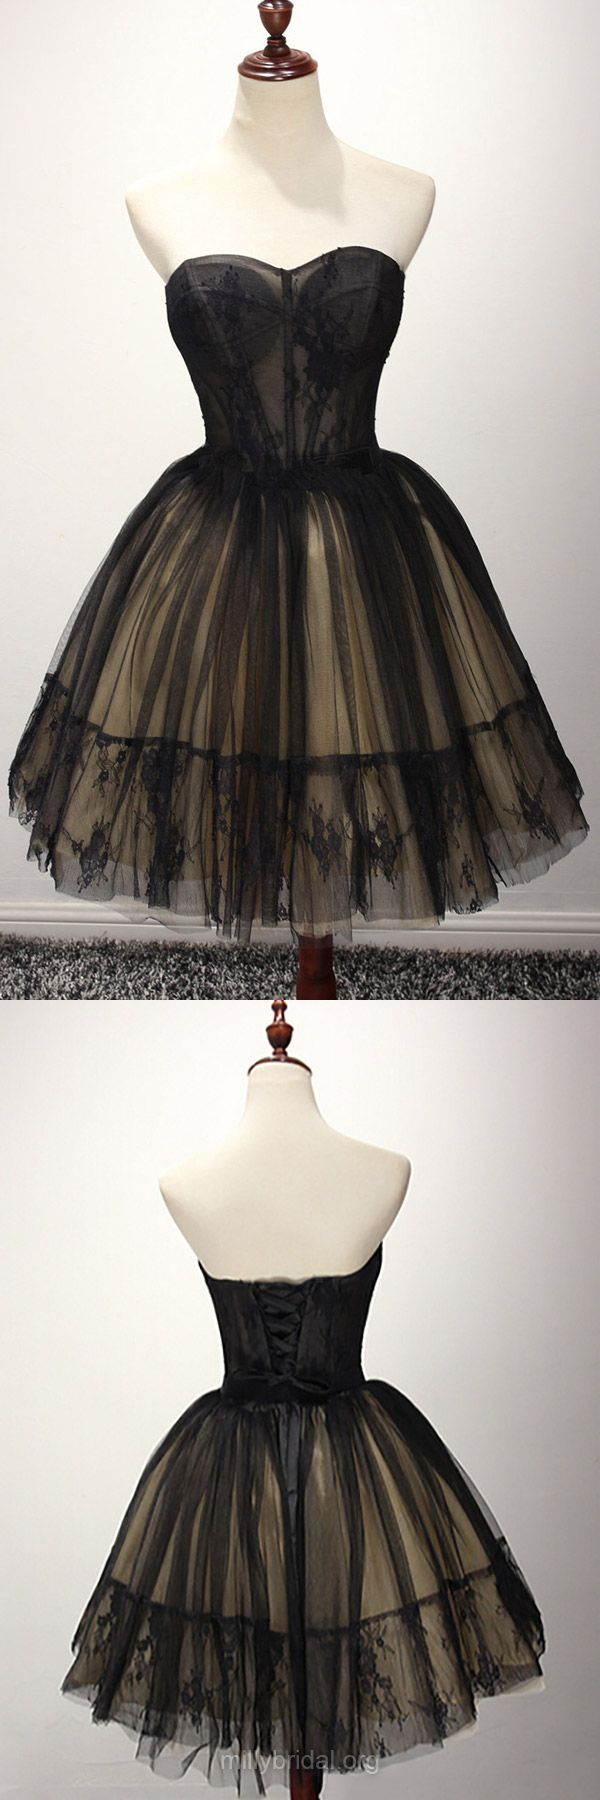 Black Prom Dresses Lace, Short Prom Gowns Princess, Sweetheart Formal Party Dresses Tulle